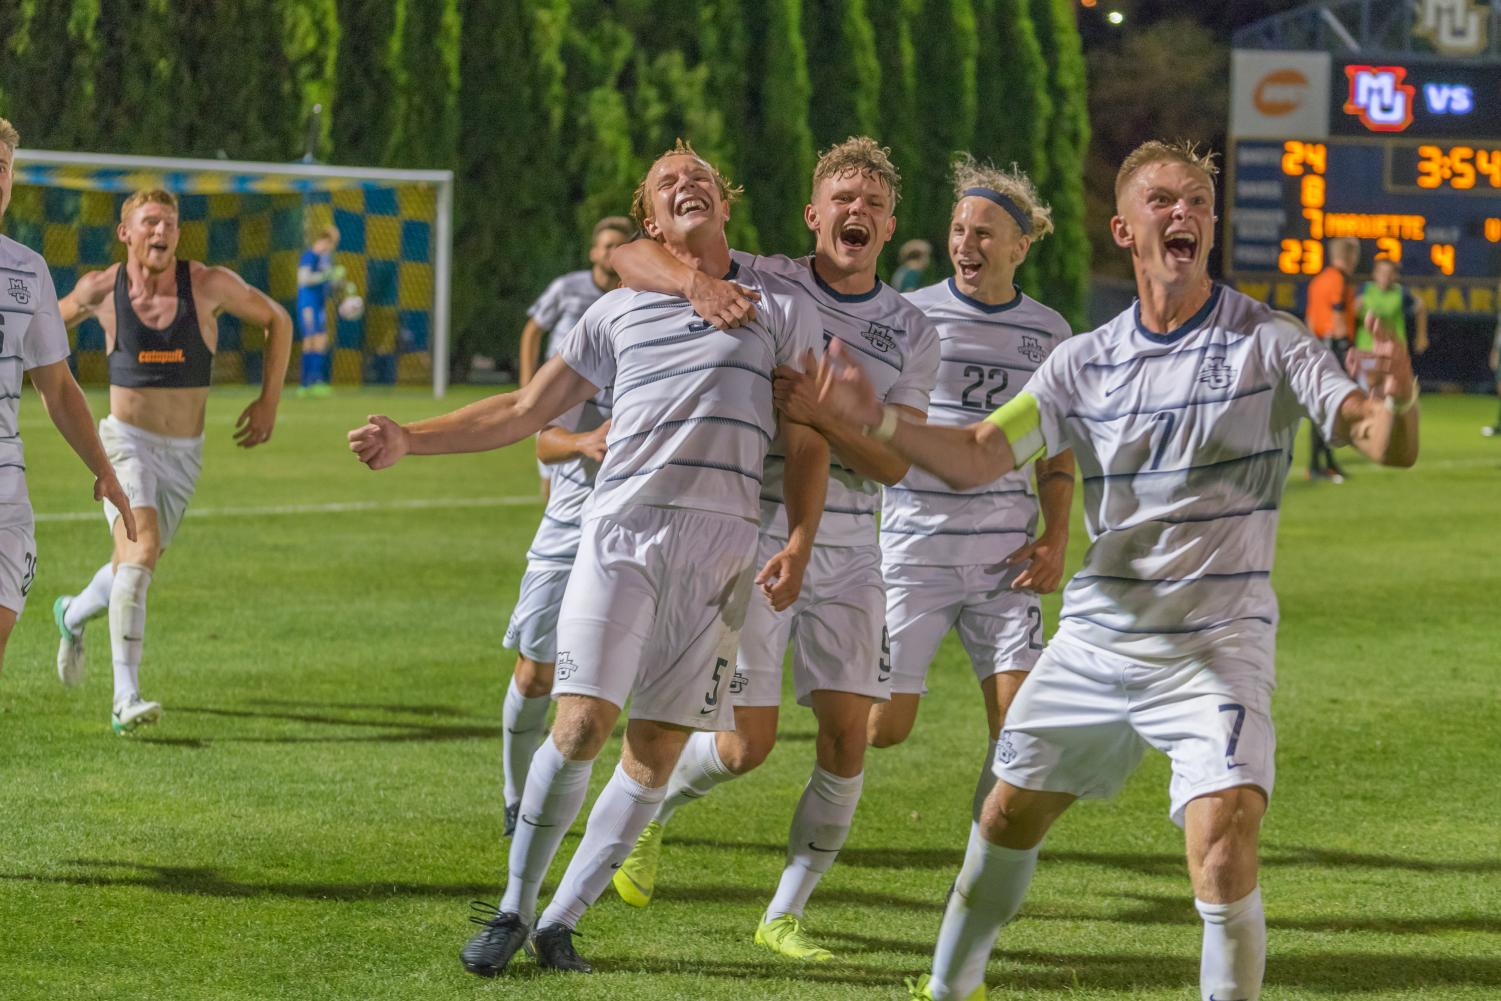 Marquette men's soccer celebrates after Manuel Cukaj's game-winning goal Friday night against UAB.